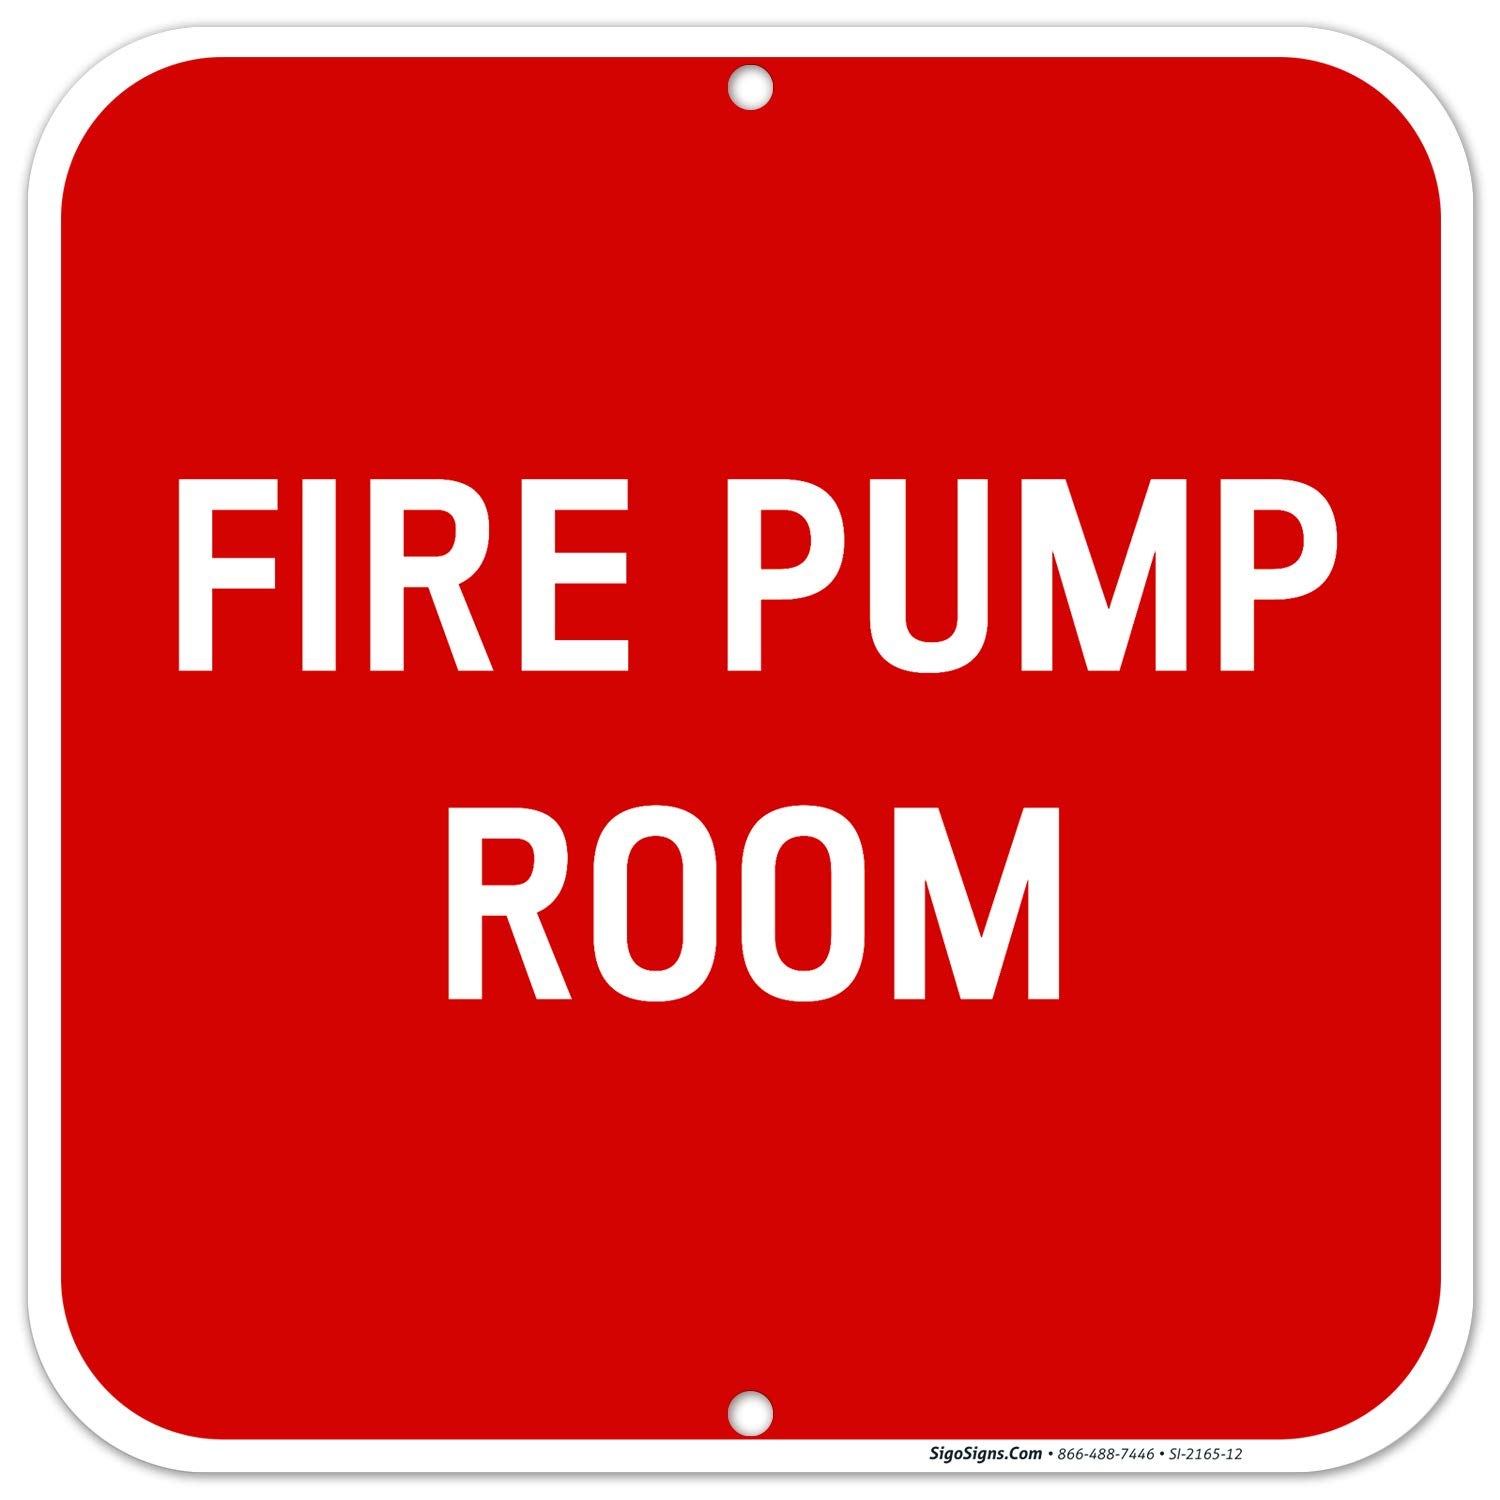 Fire Pump Room Sign, 12x12 Rust Free Heavy Aluminum, UV Protected, Long Lasting Weather/Fade Resistant, Easy Mounting, Indoor/Outdoor Use, Made in USA